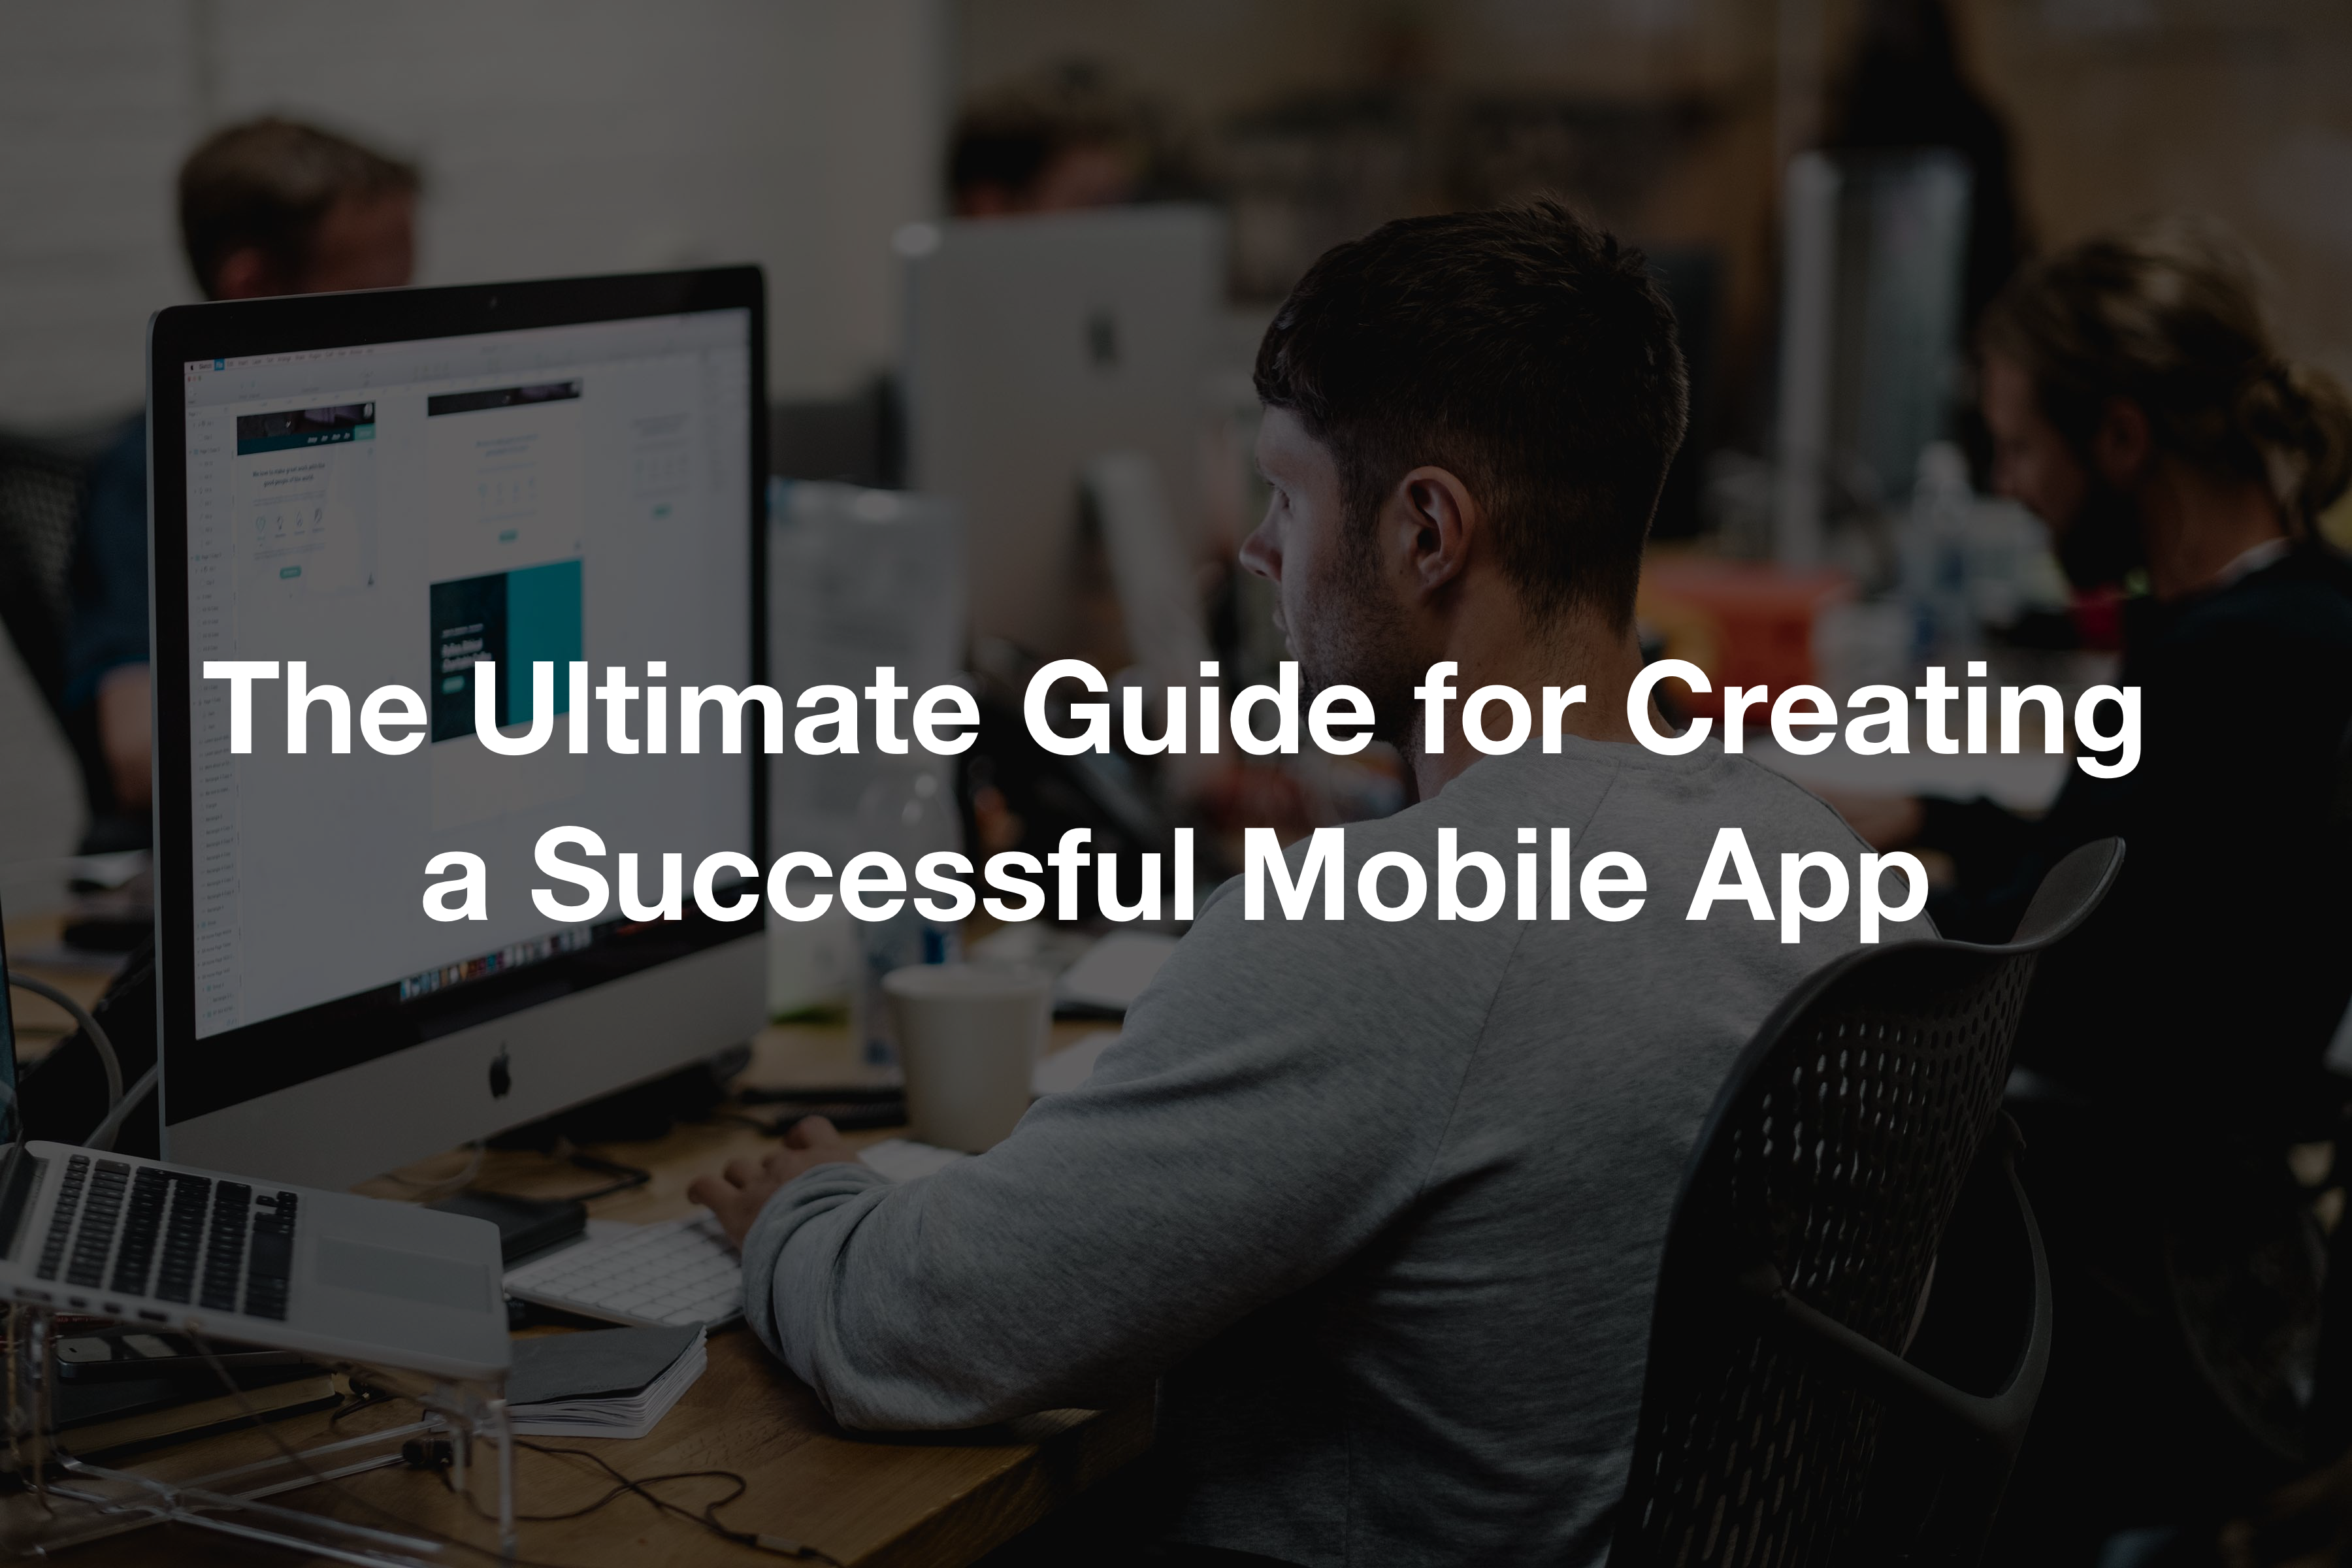 The Ultimate Guide for Creating a Successful Mobile App in 2019